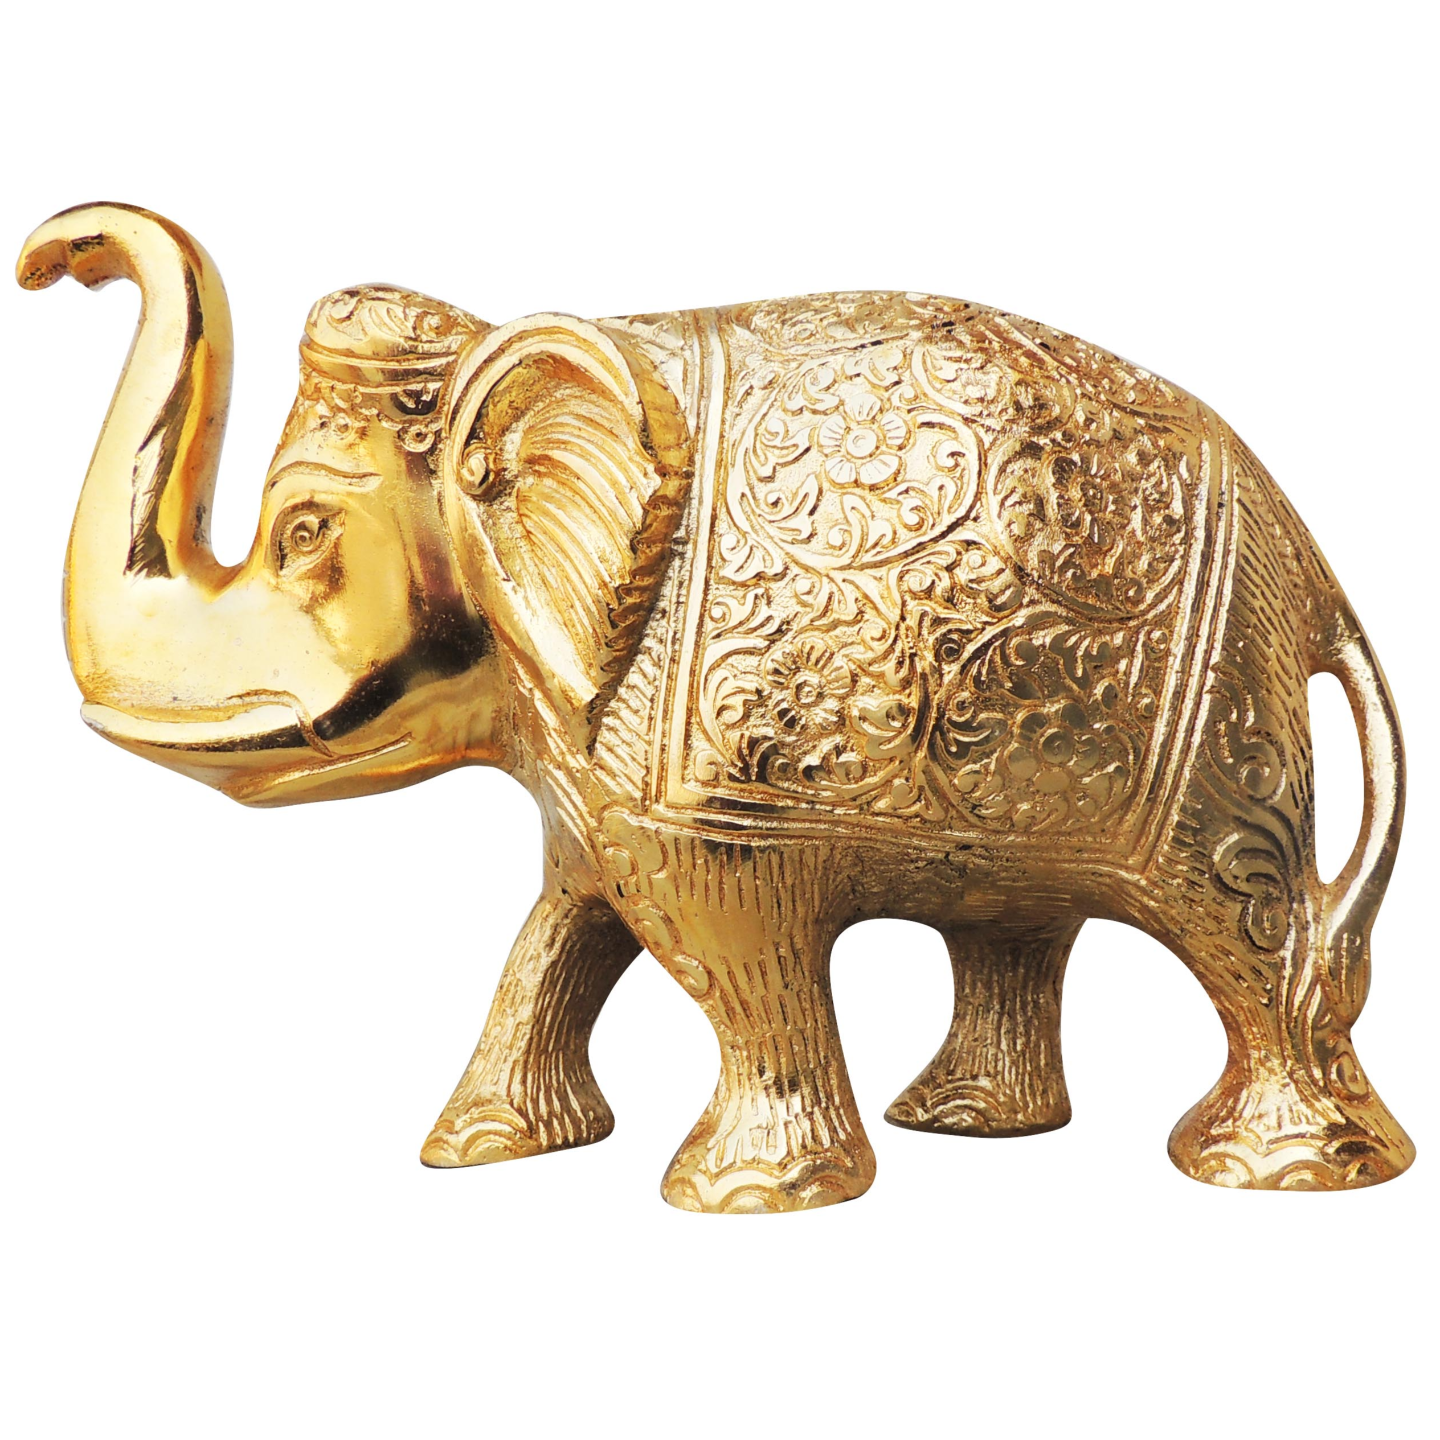 Metallic Elephant Decorative Showpiece In Gold Finish - 735 Inch AS240 C